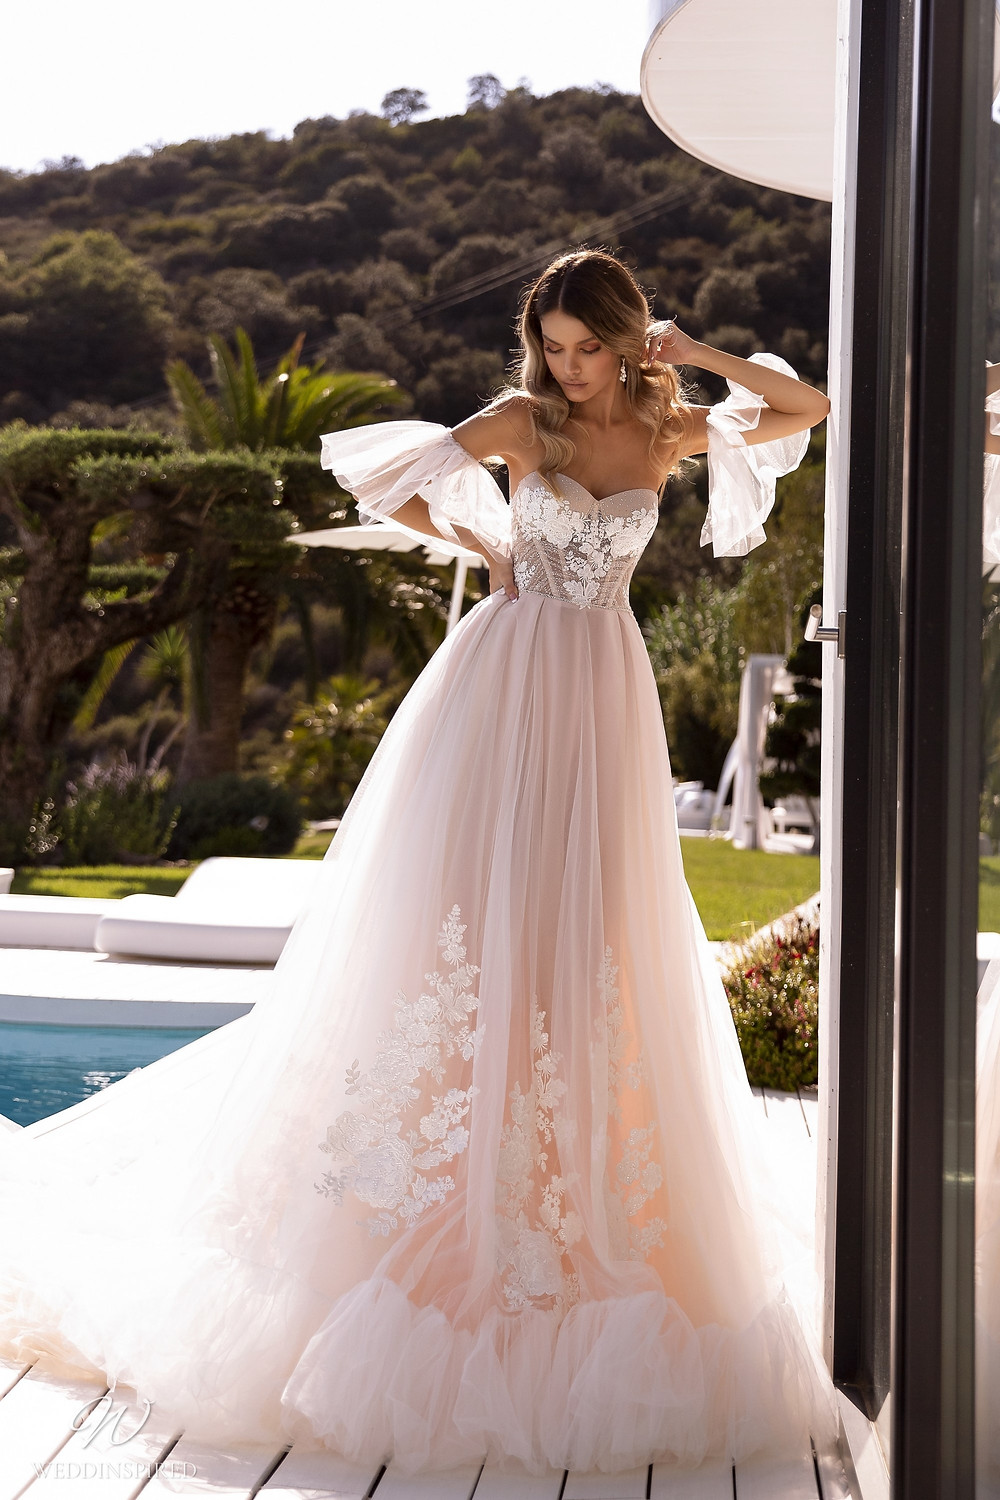 A Tina Valerdi strapless blush romantic ball gown wedding dress with tulle and lace